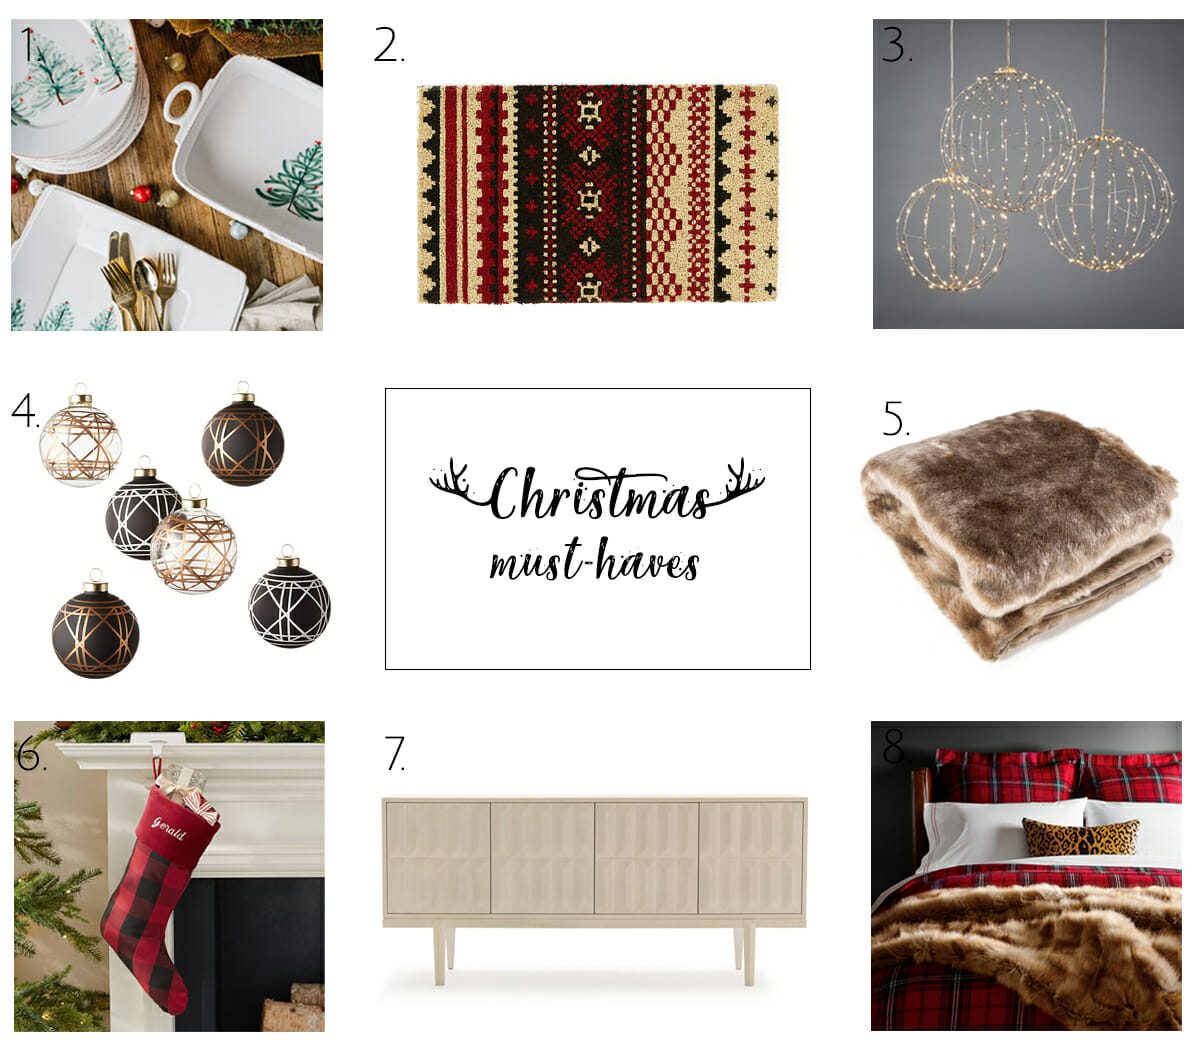 How to decorate for Christmas - Christmas decorating ideas